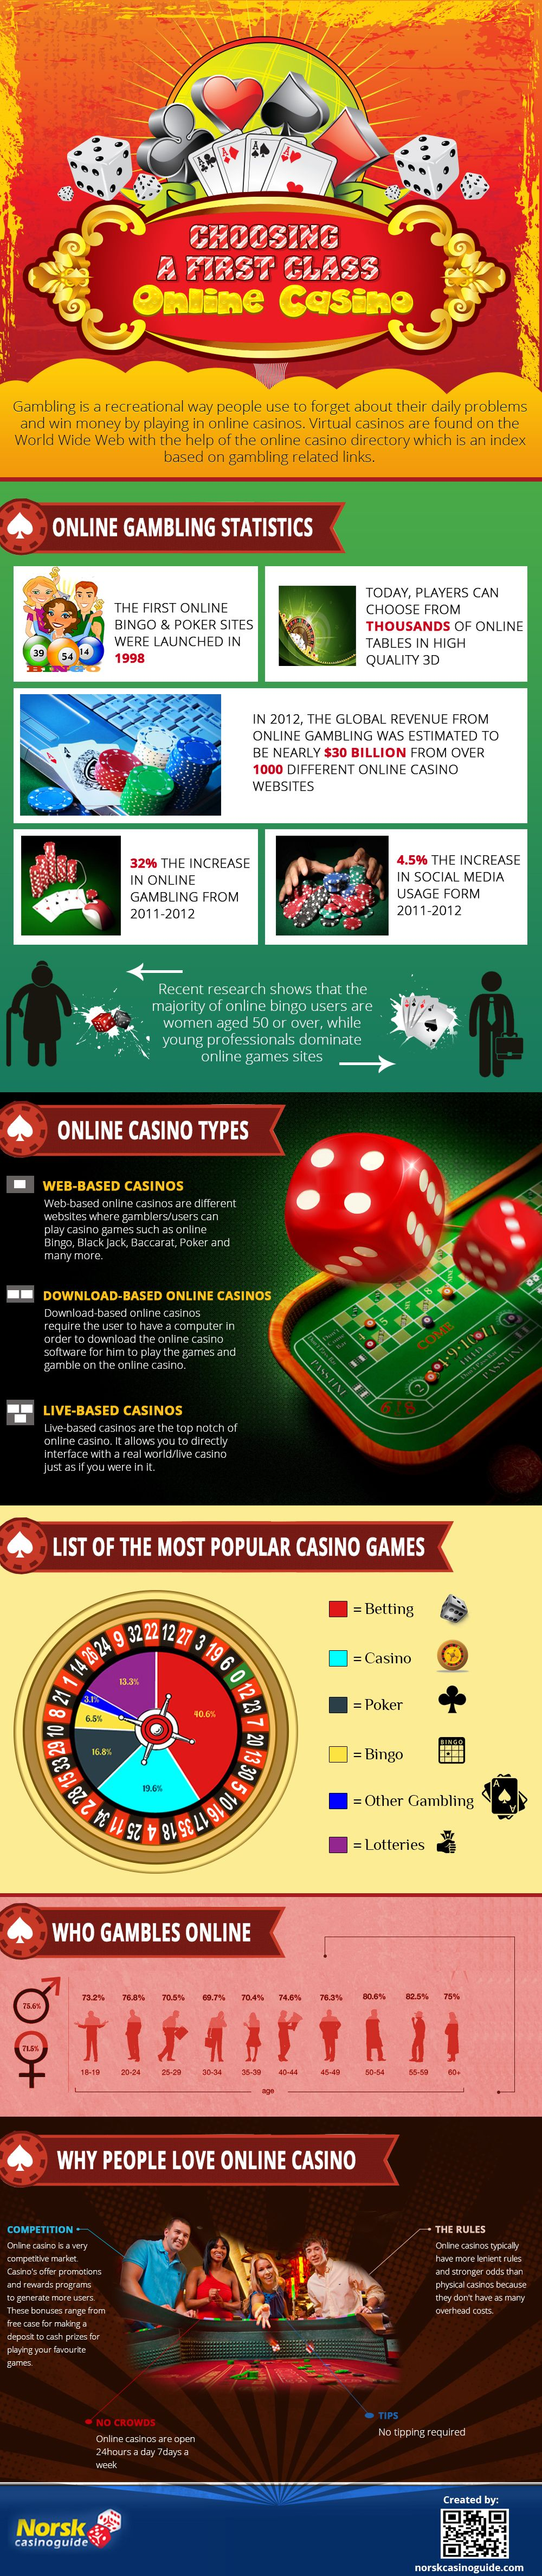 The State Of Social Media And Online Gaming